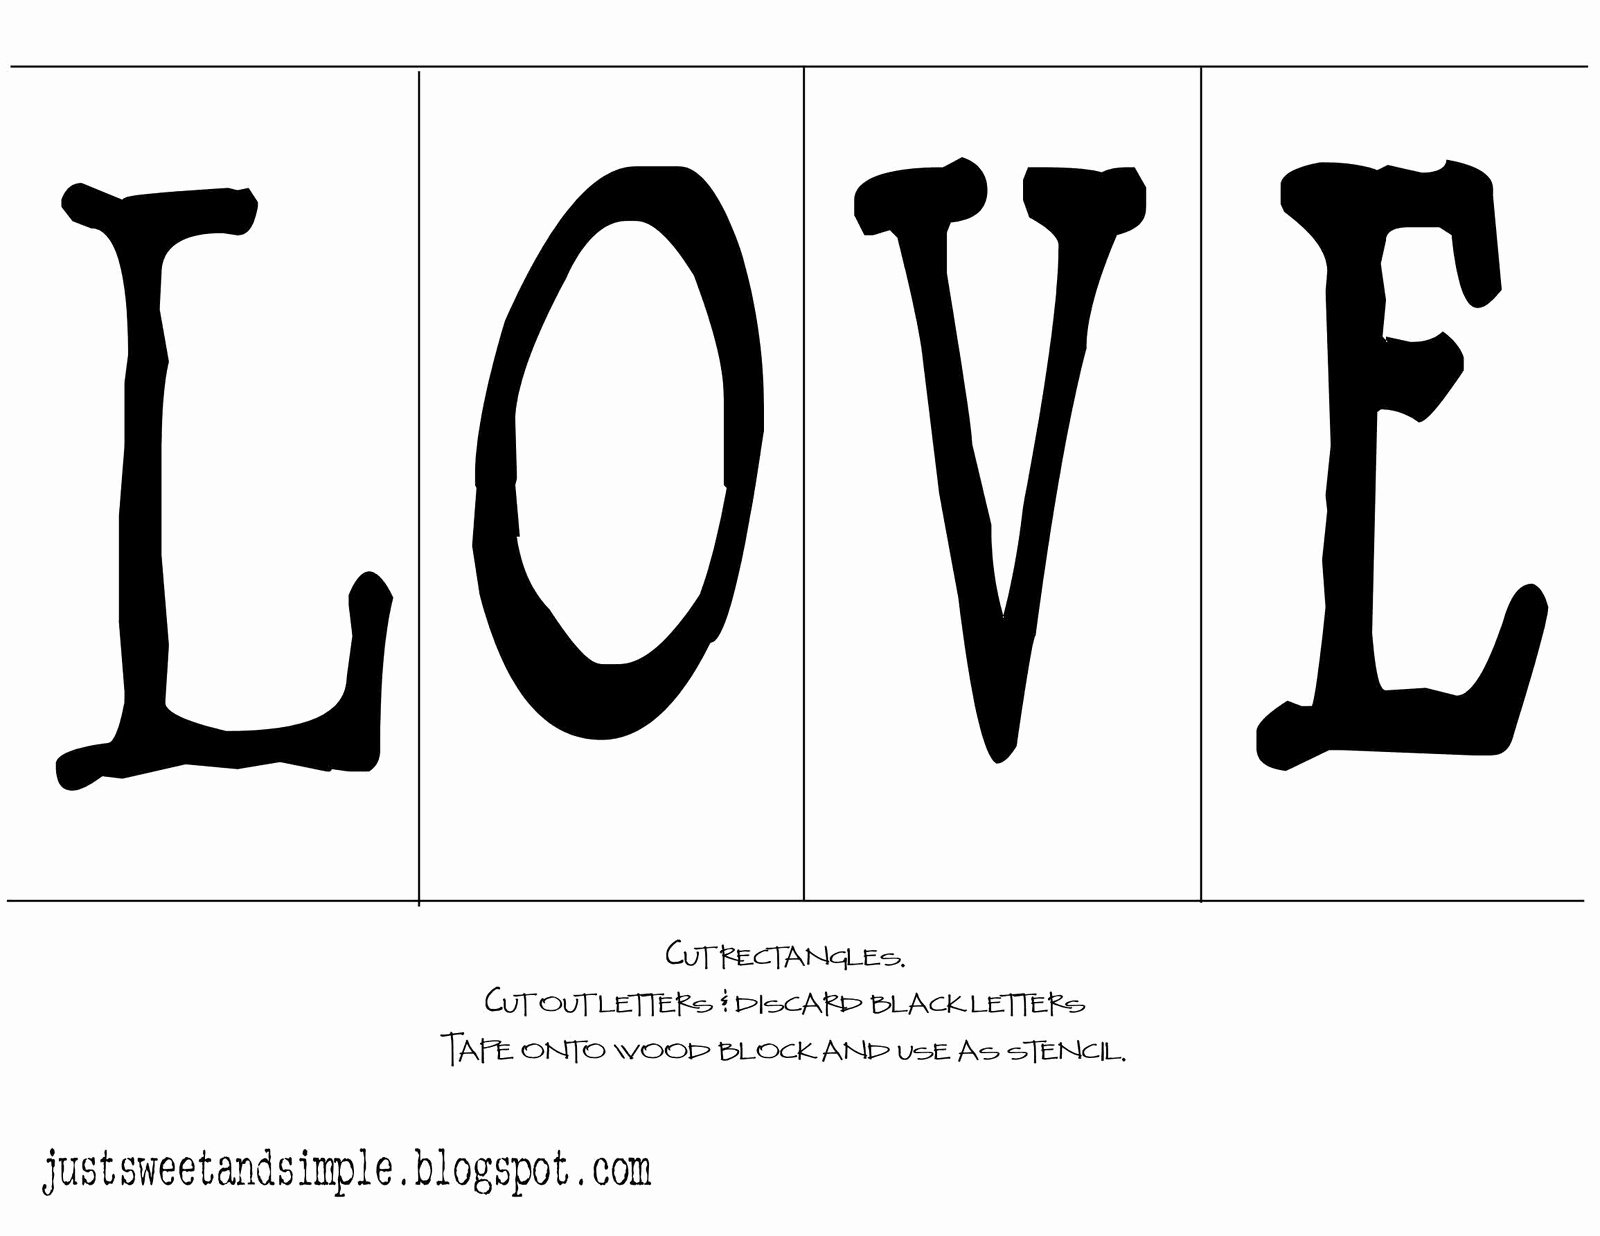 Printable Letter Stencils for Wood Inspirational Just Sweet and Simple Love Wood Blocks